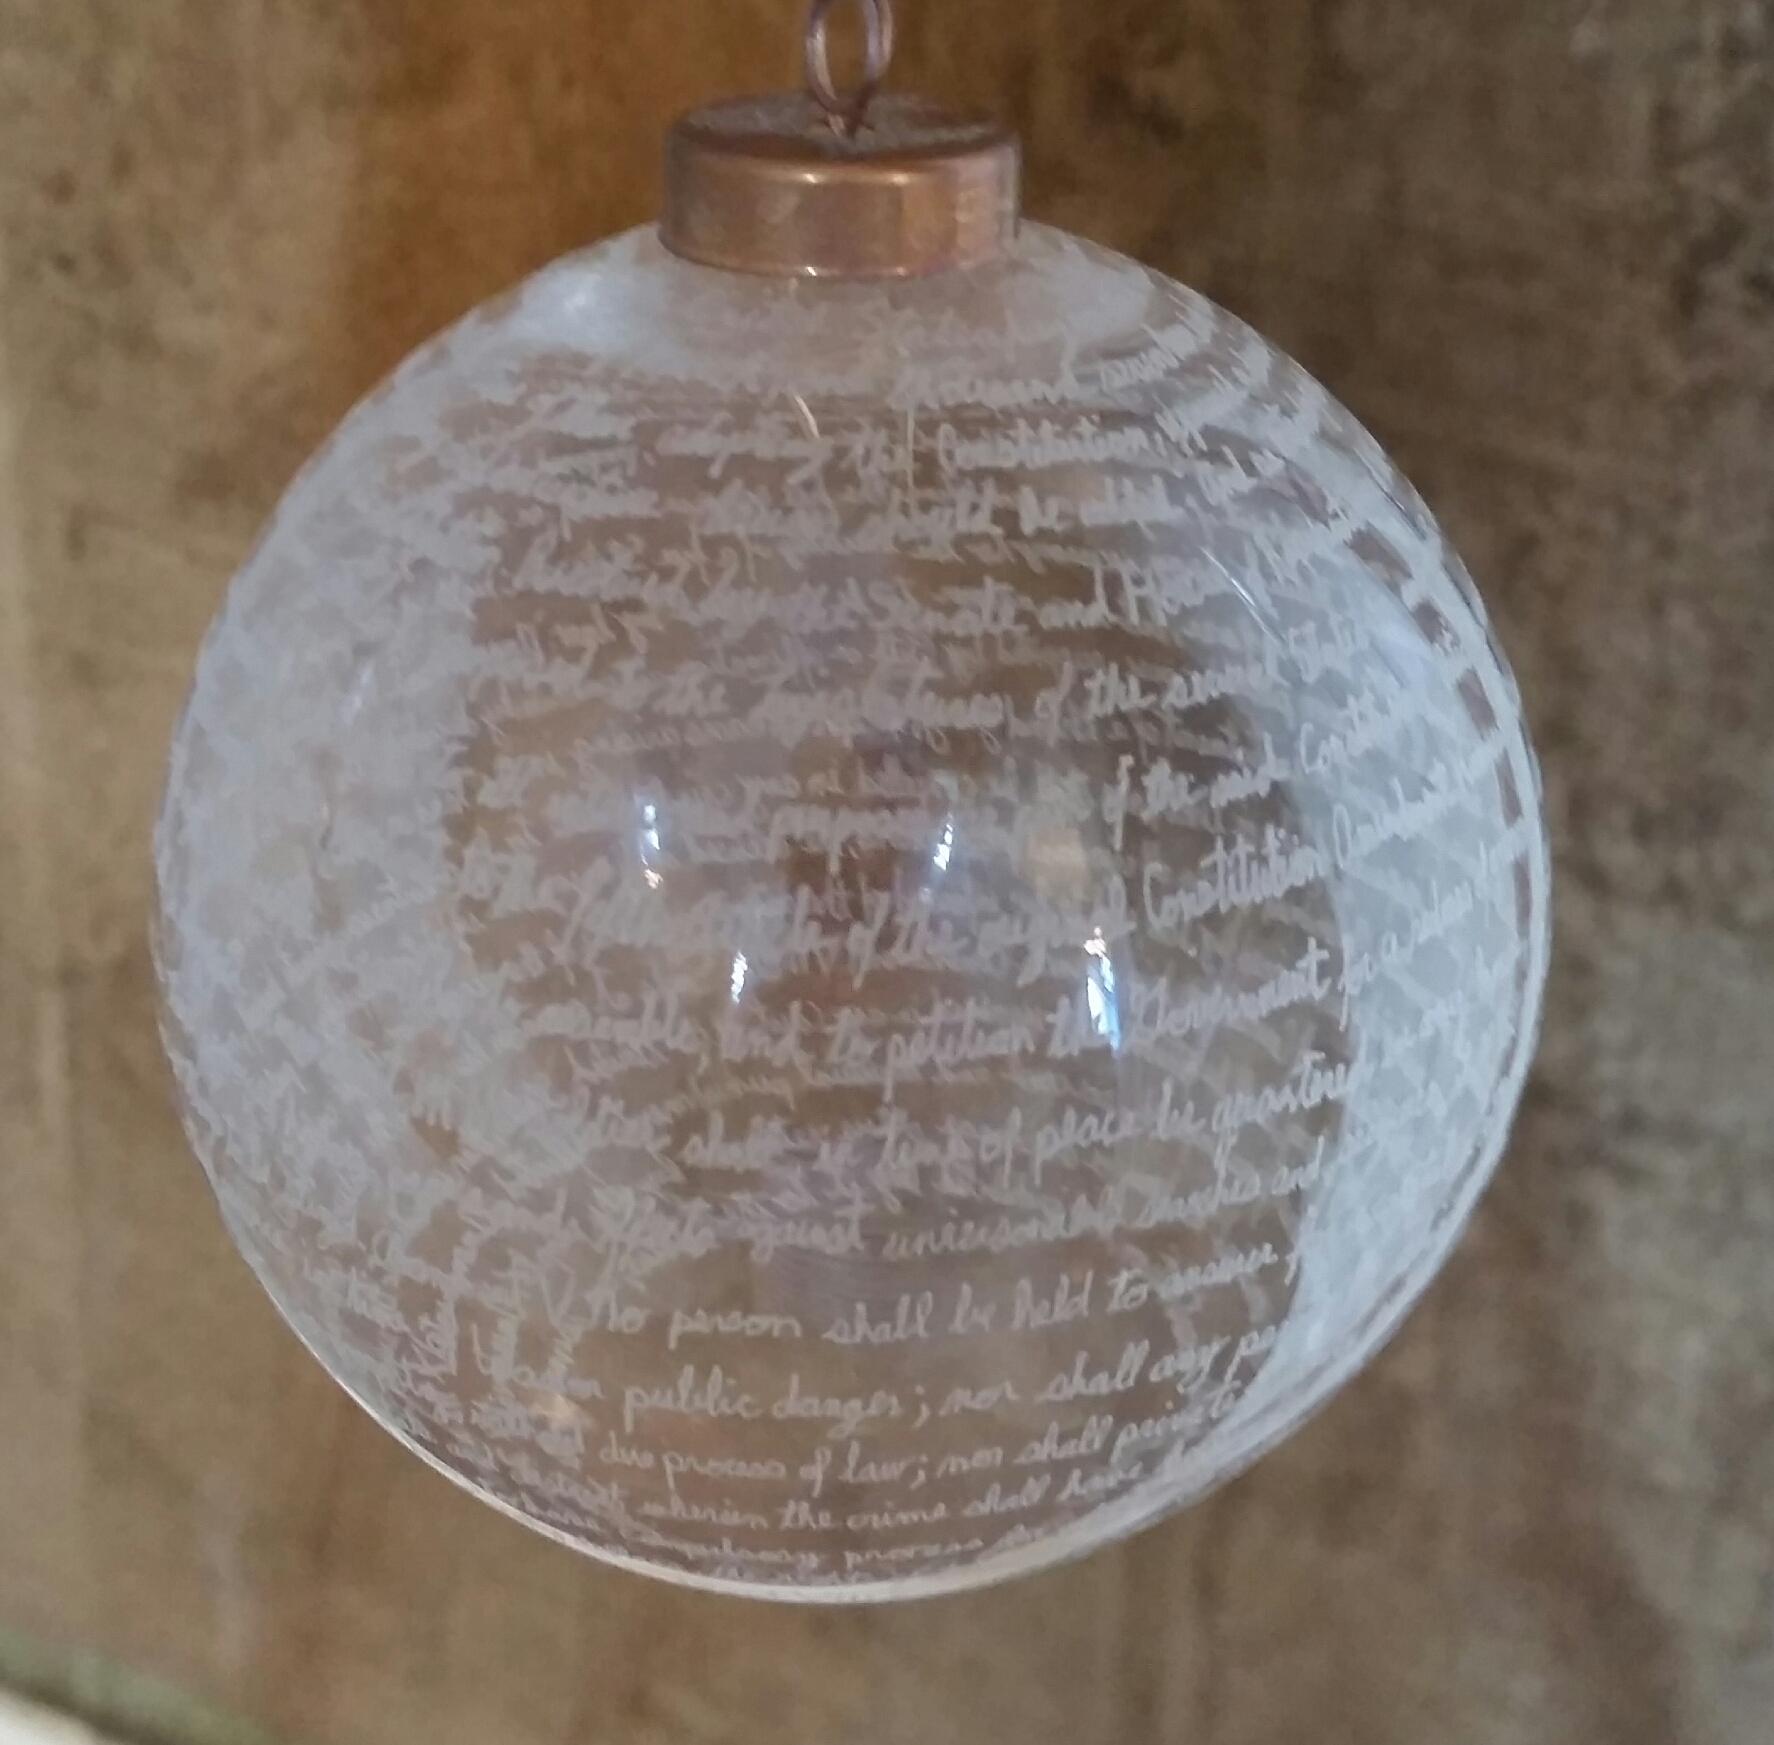 Devon Franceschi, Hand etched glass ornament, value: $250